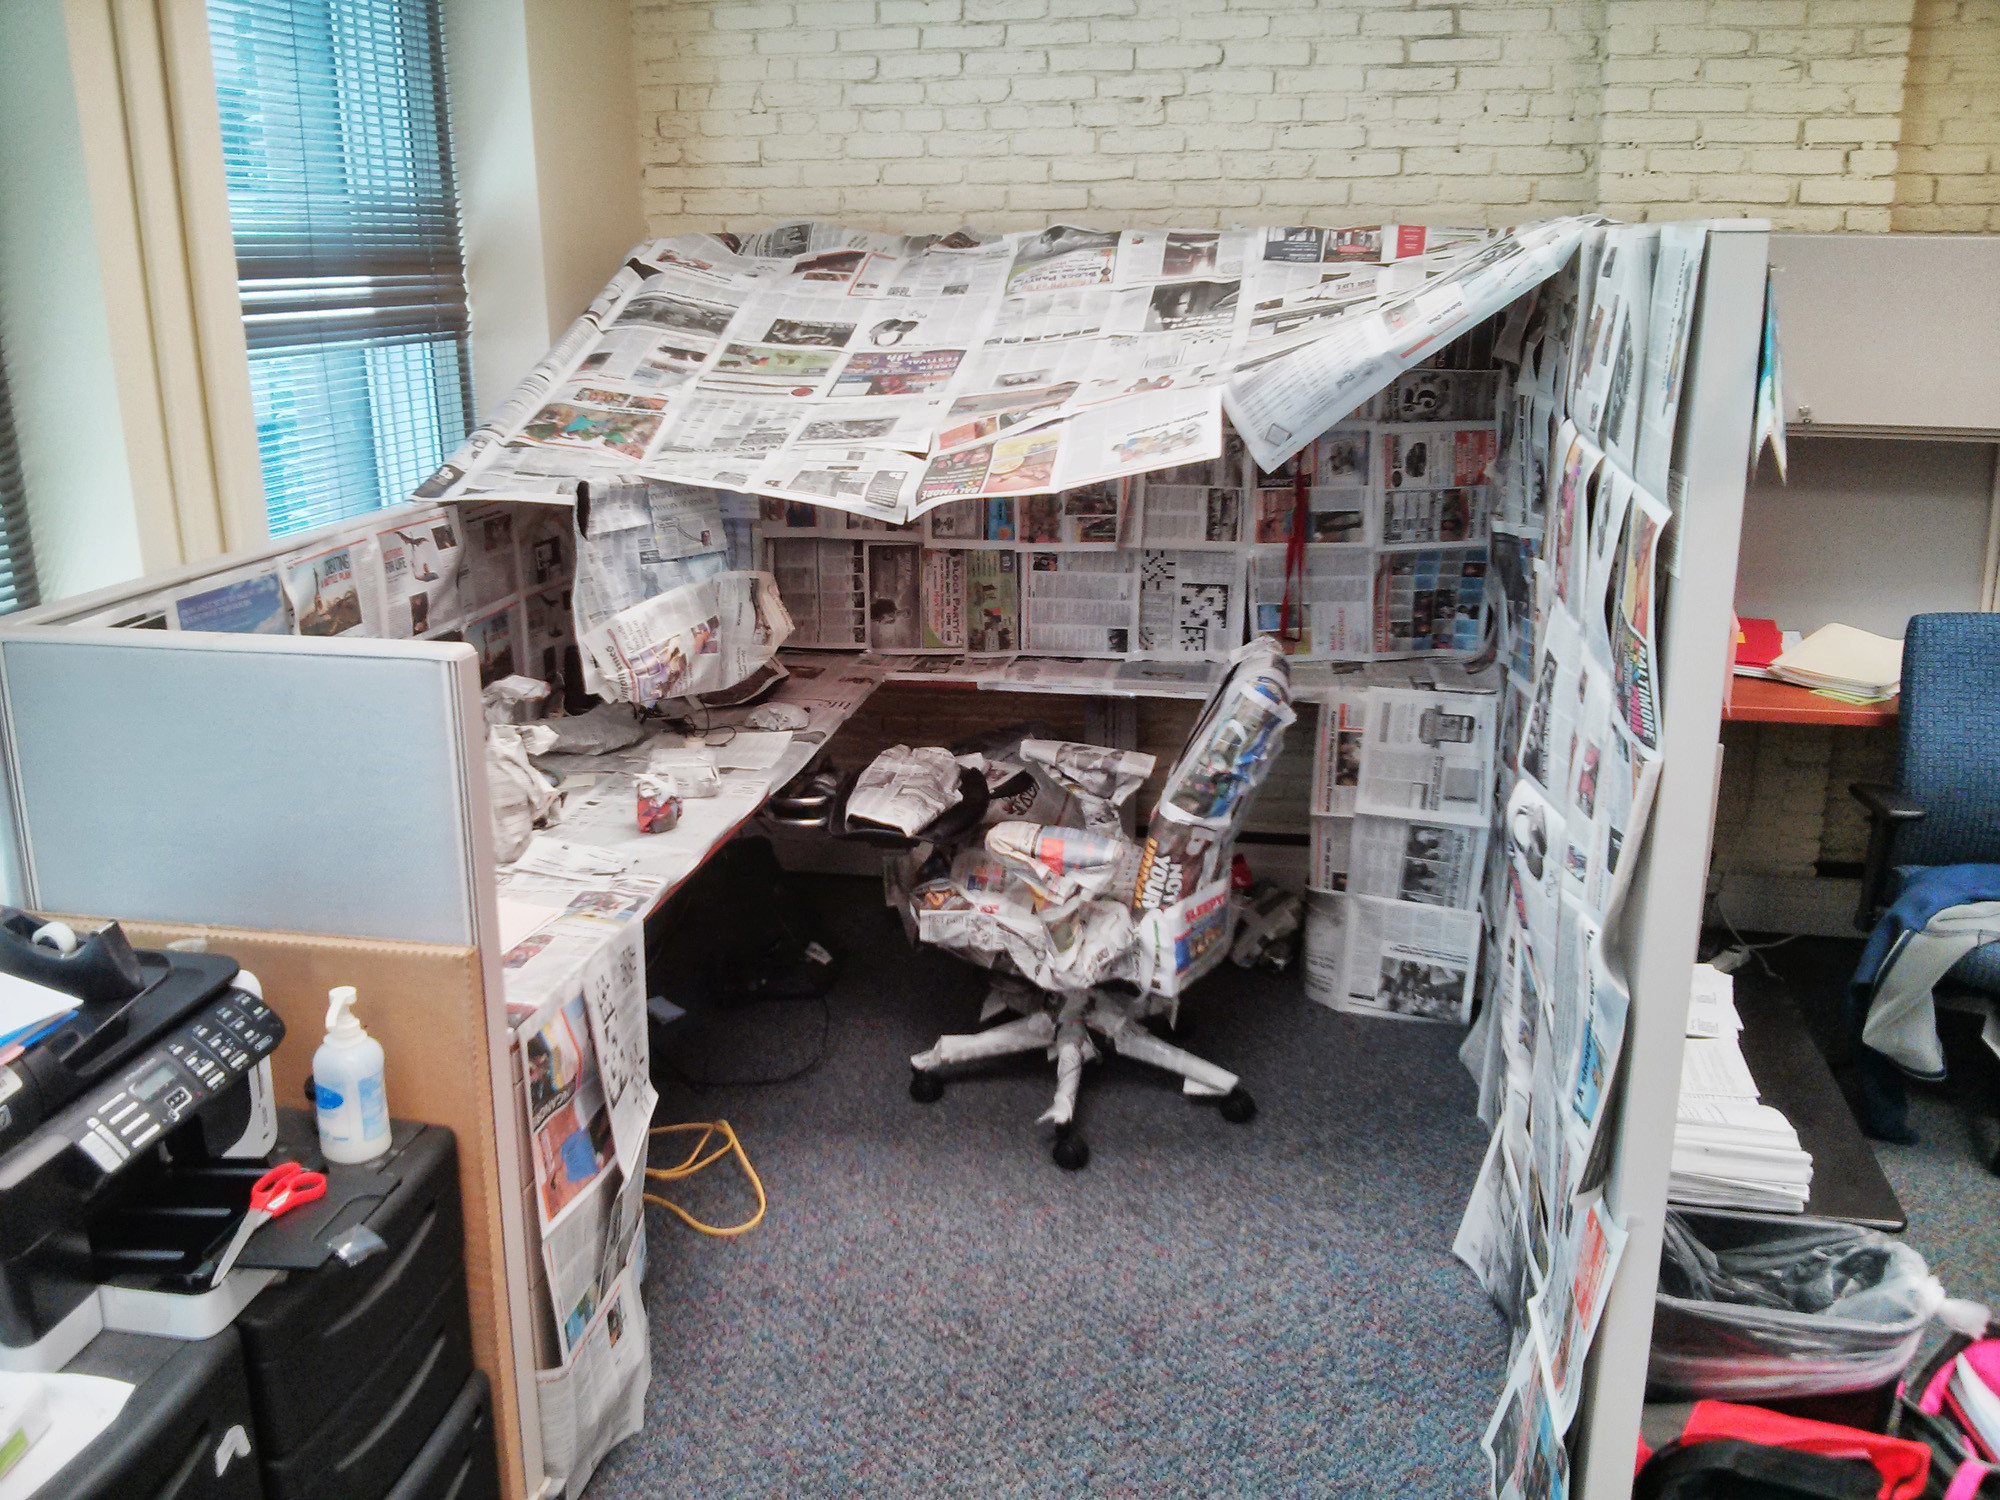 & Wrapping coworkeru0027s cubicle with b [Pictures] - Baltimore Sun